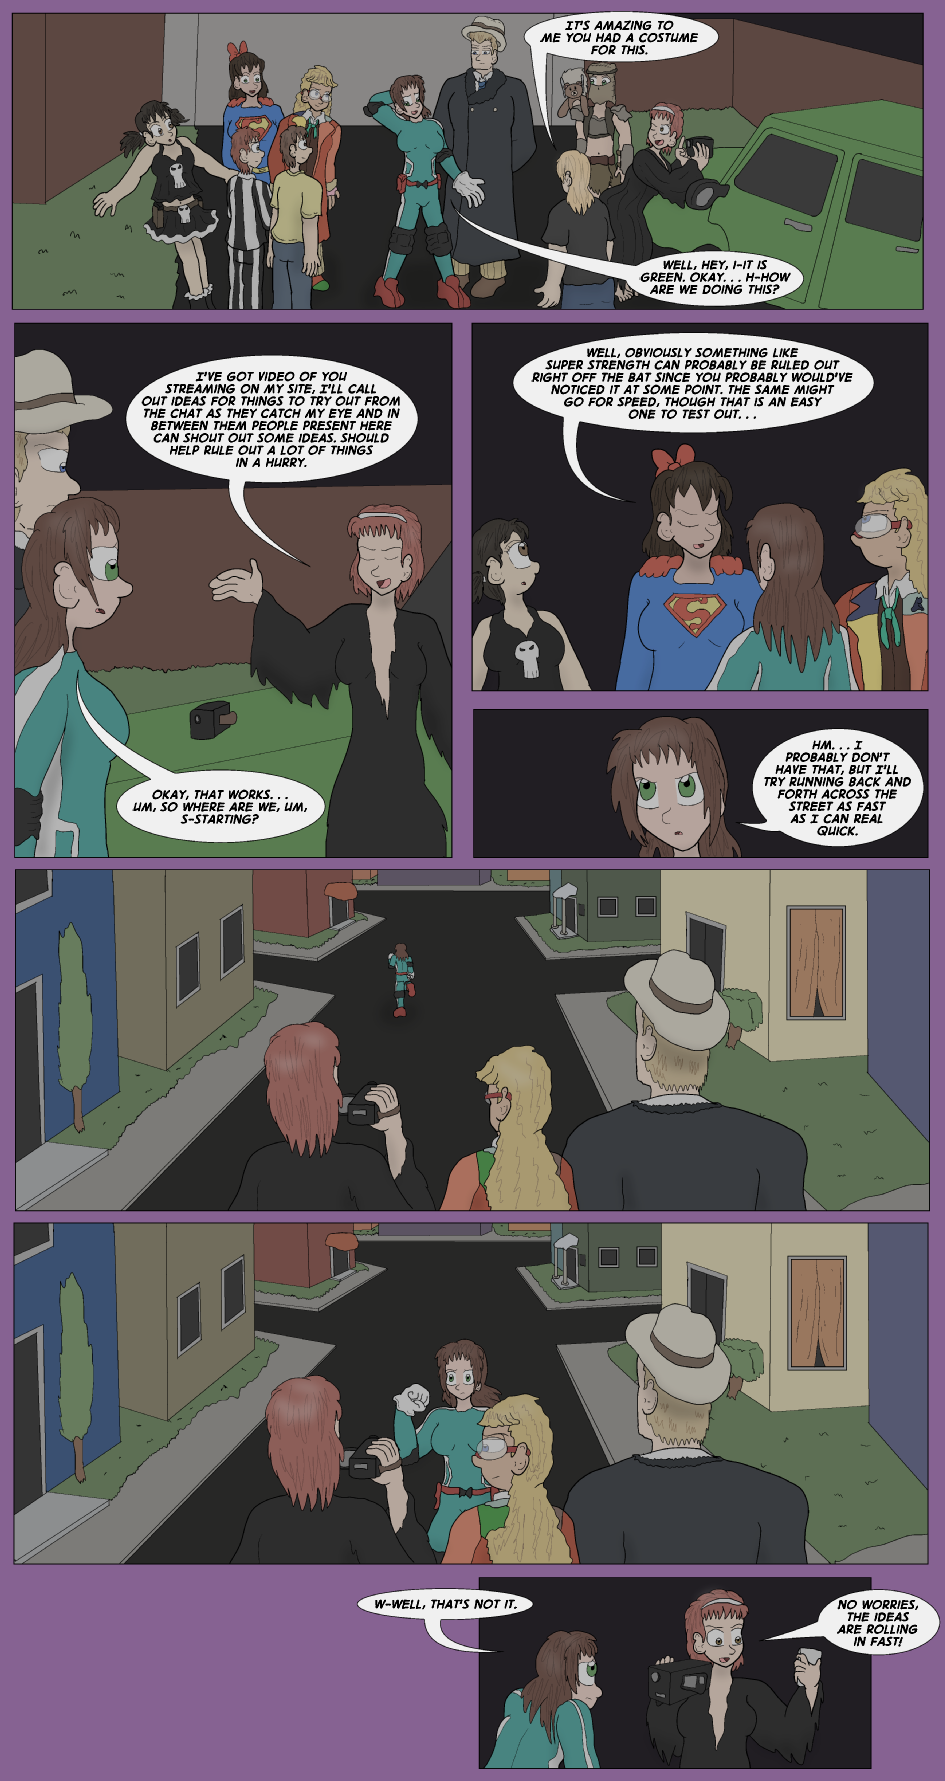 The DeKalb County Public Access Halloween Special, Page 30